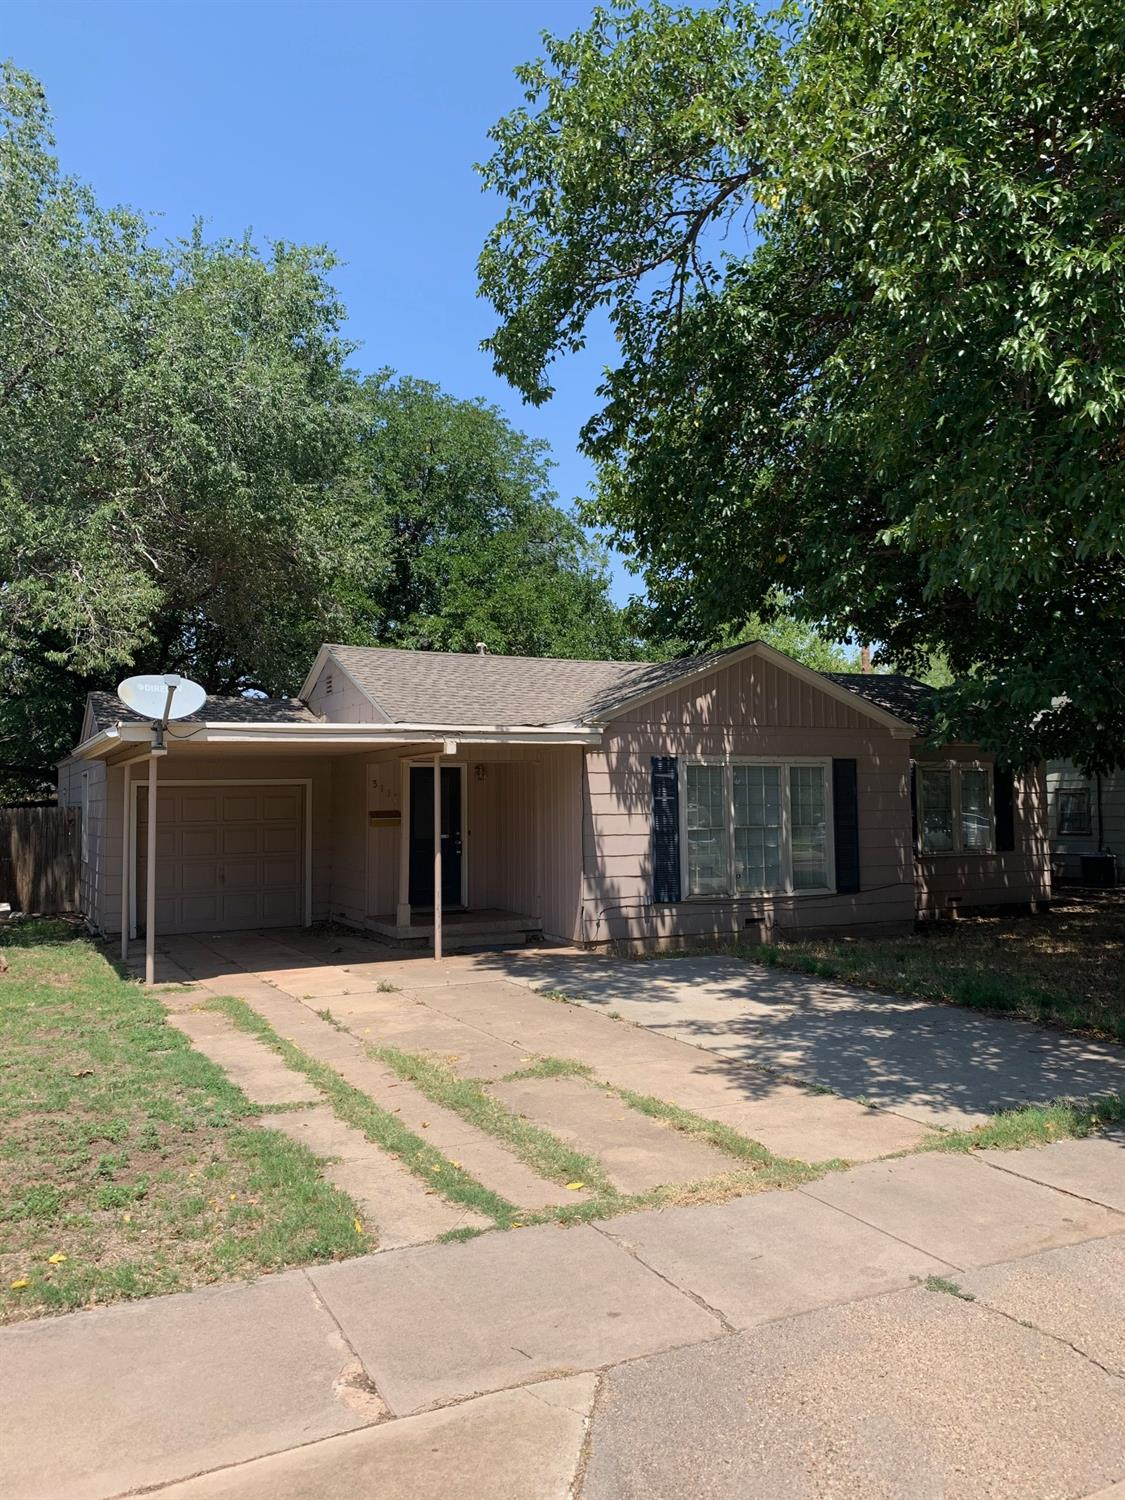 Great home in the heart of Texas Tech. Close to the local parks and just blocks from the Texas Tech campus. This 3 bed 2 bath home has a great lay out and huge back yard.